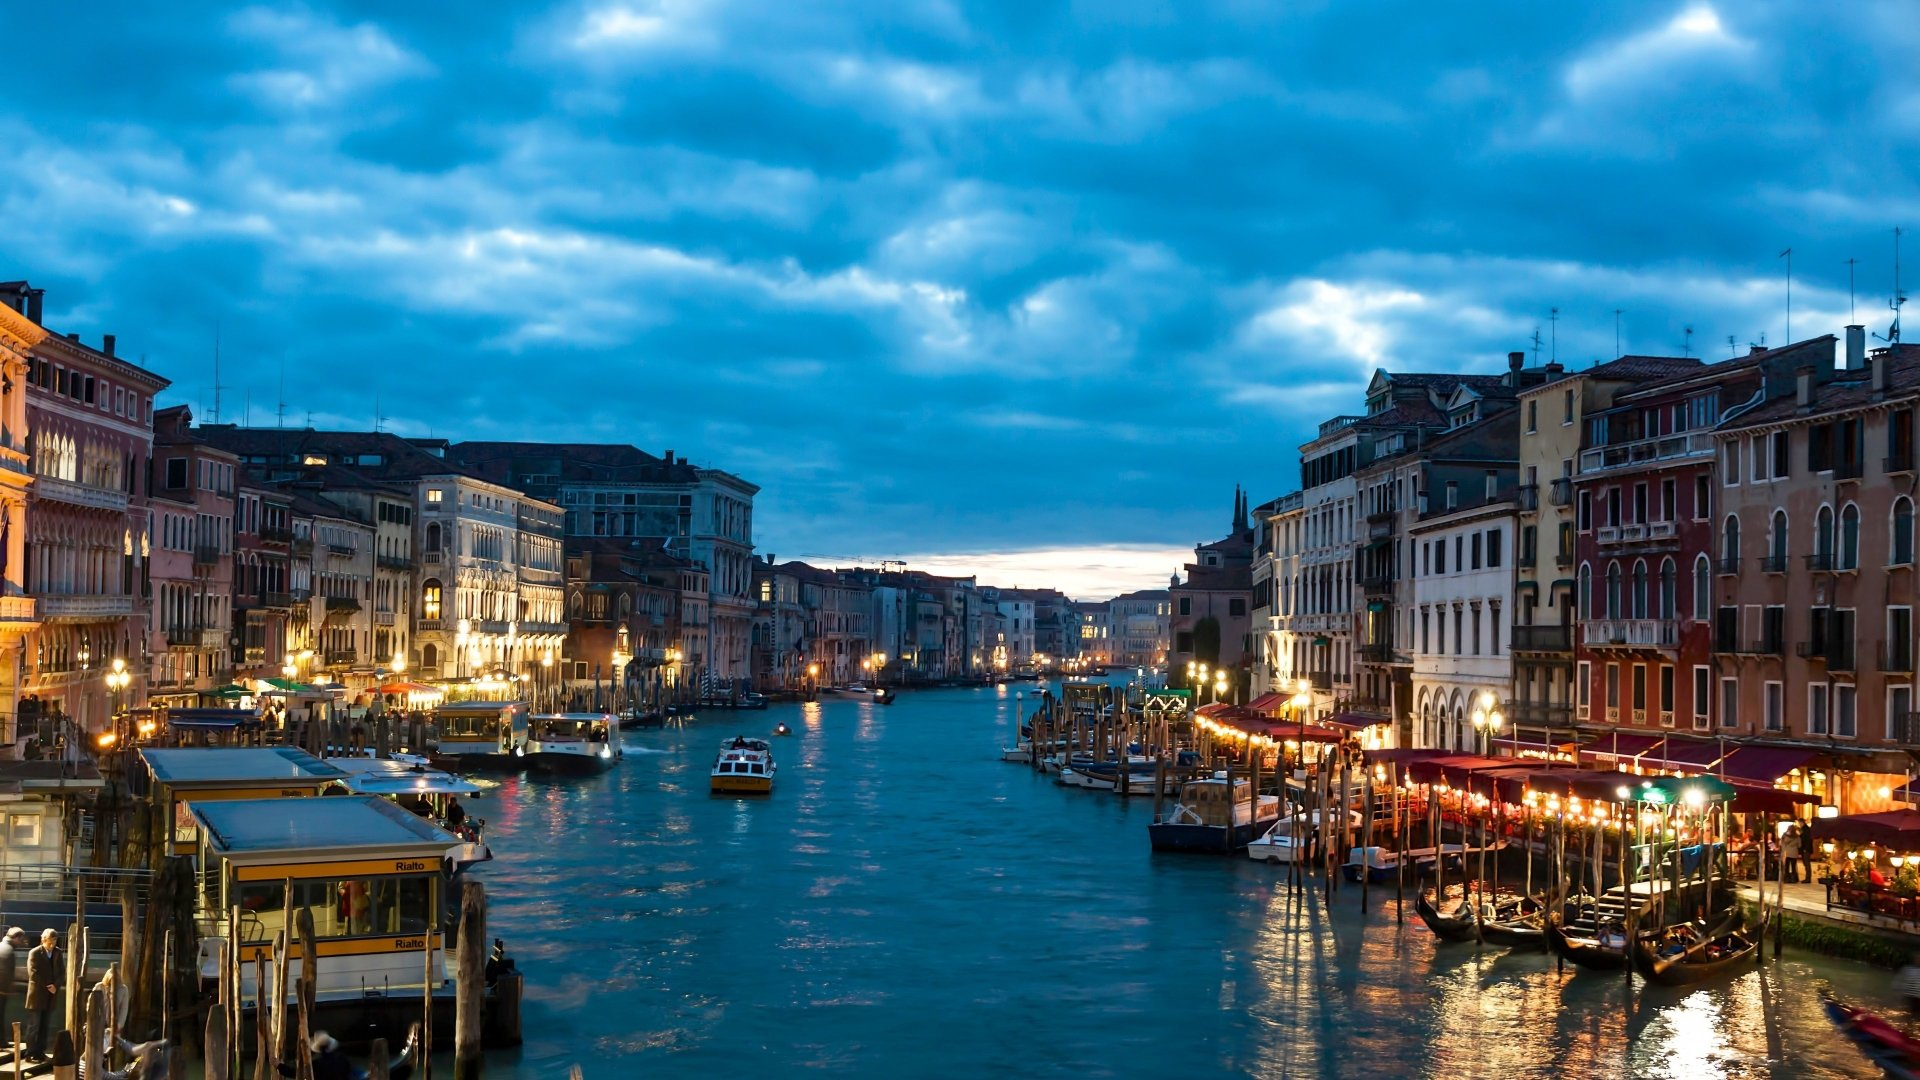 125 Venice Hd Wallpapers Background Images Wallpaper Abyss